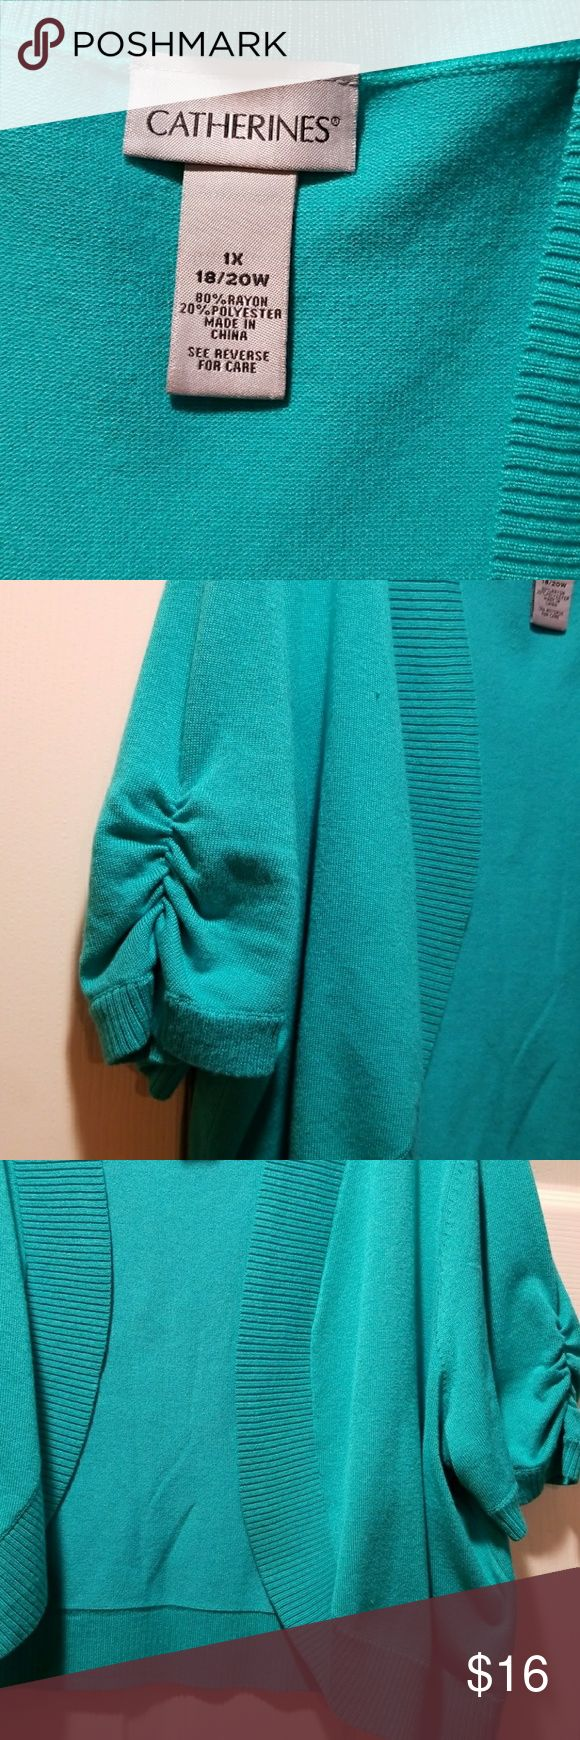 Catherine's  Shrug- Bolero,sweater Light teal color, 80% Rayon 20% polyester Elbow-length  sleeves. Has a pulled thread, as shone in pic. Dress not included. Catherines Sweaters Shrugs & Ponchos